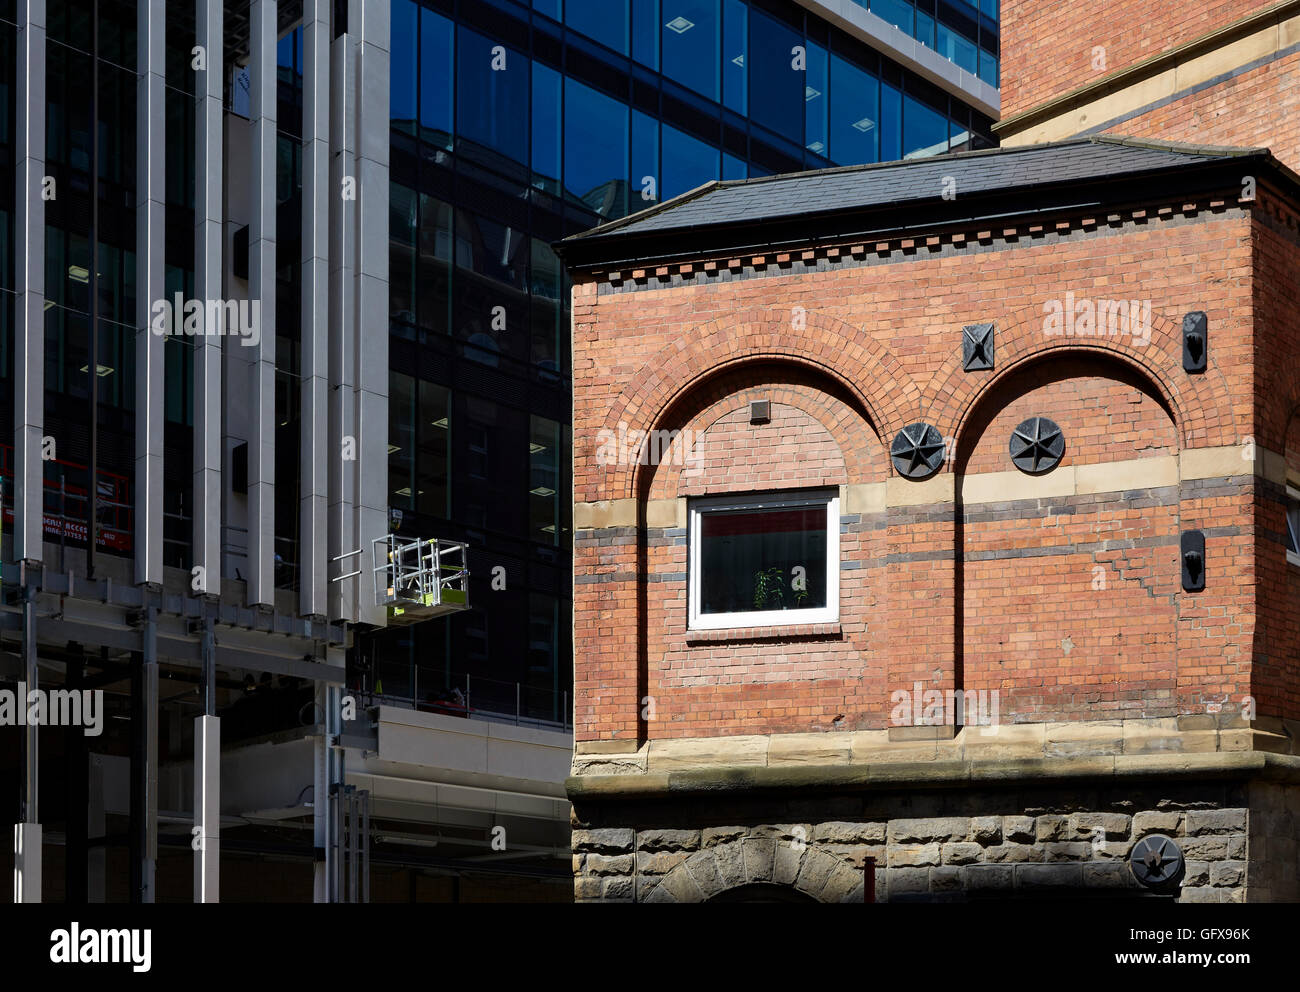 arched brickwork of old building contrasted with modern building of Central Square, Leeds - Stock Image